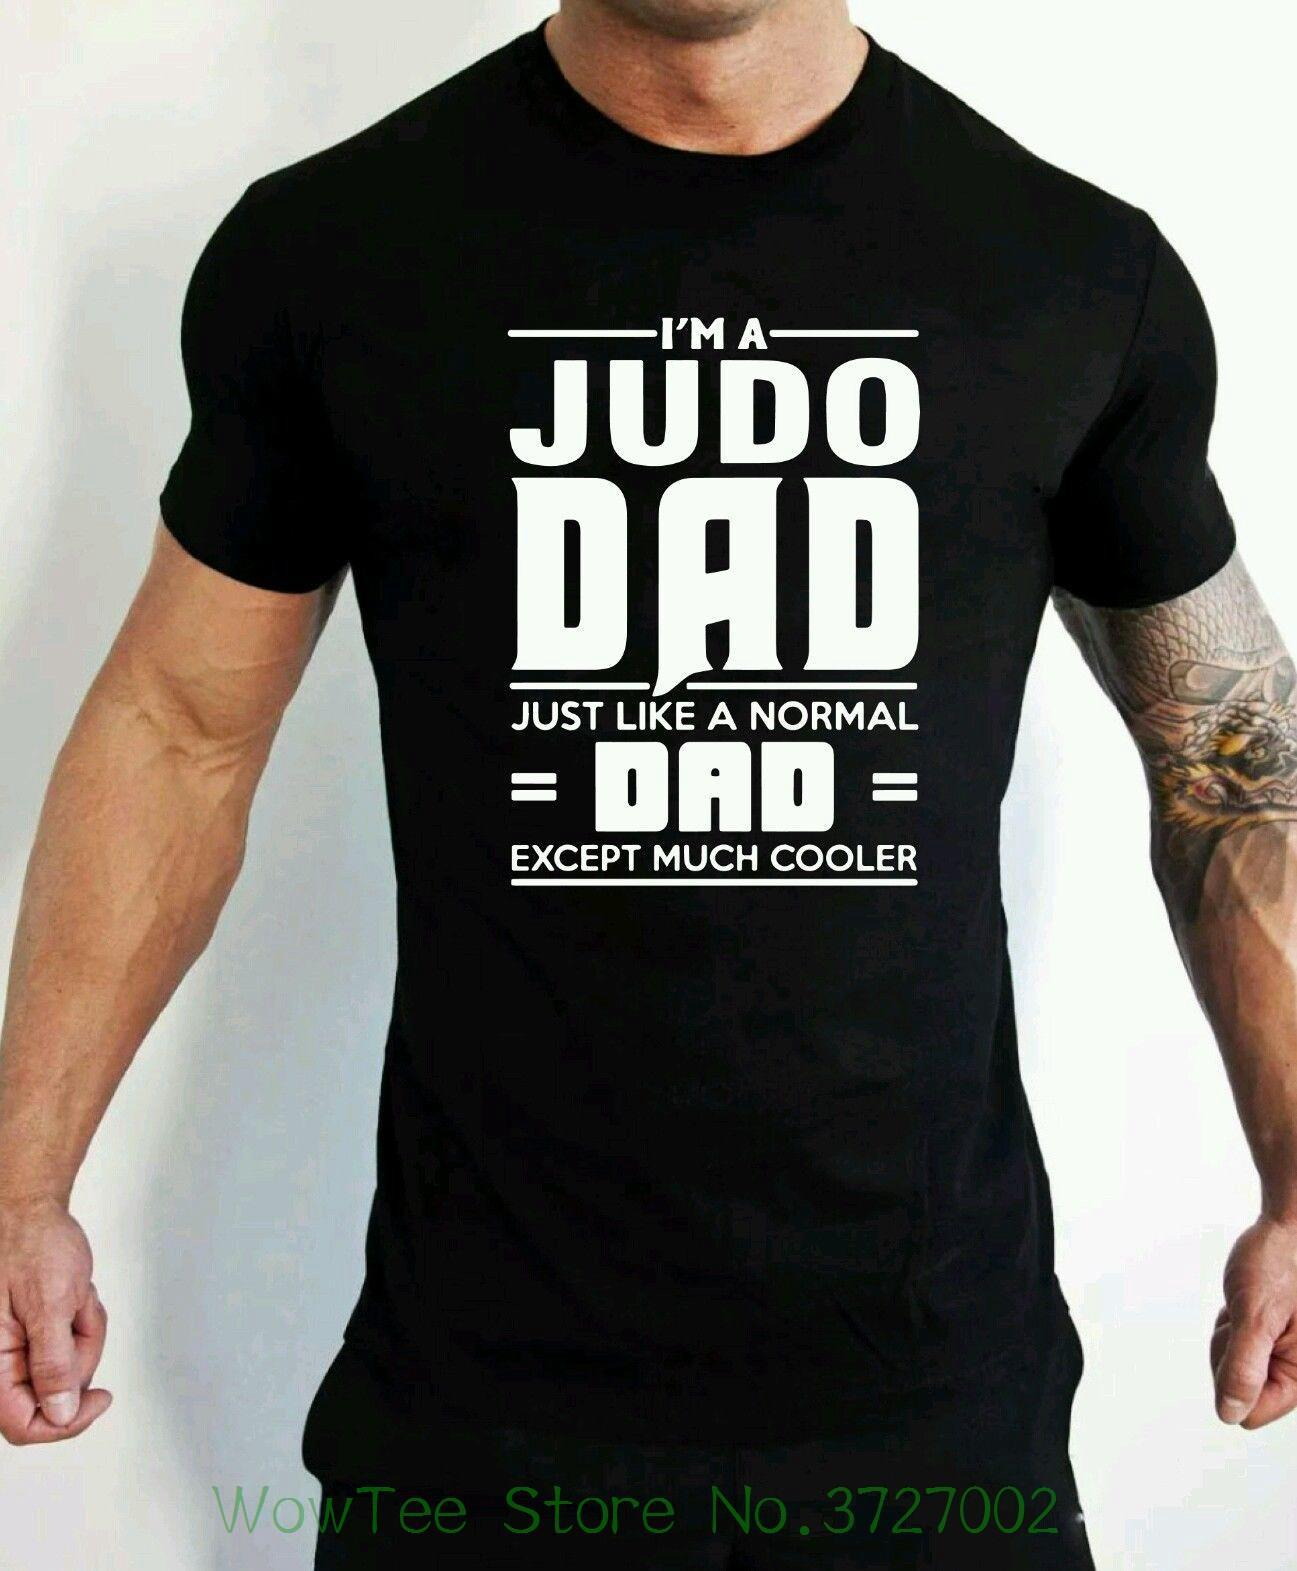 Judo Dad T Shirt Martial Artist Fathers Day Birthday Present Men High Quality Tees Shop For Shirts Online From Jie031